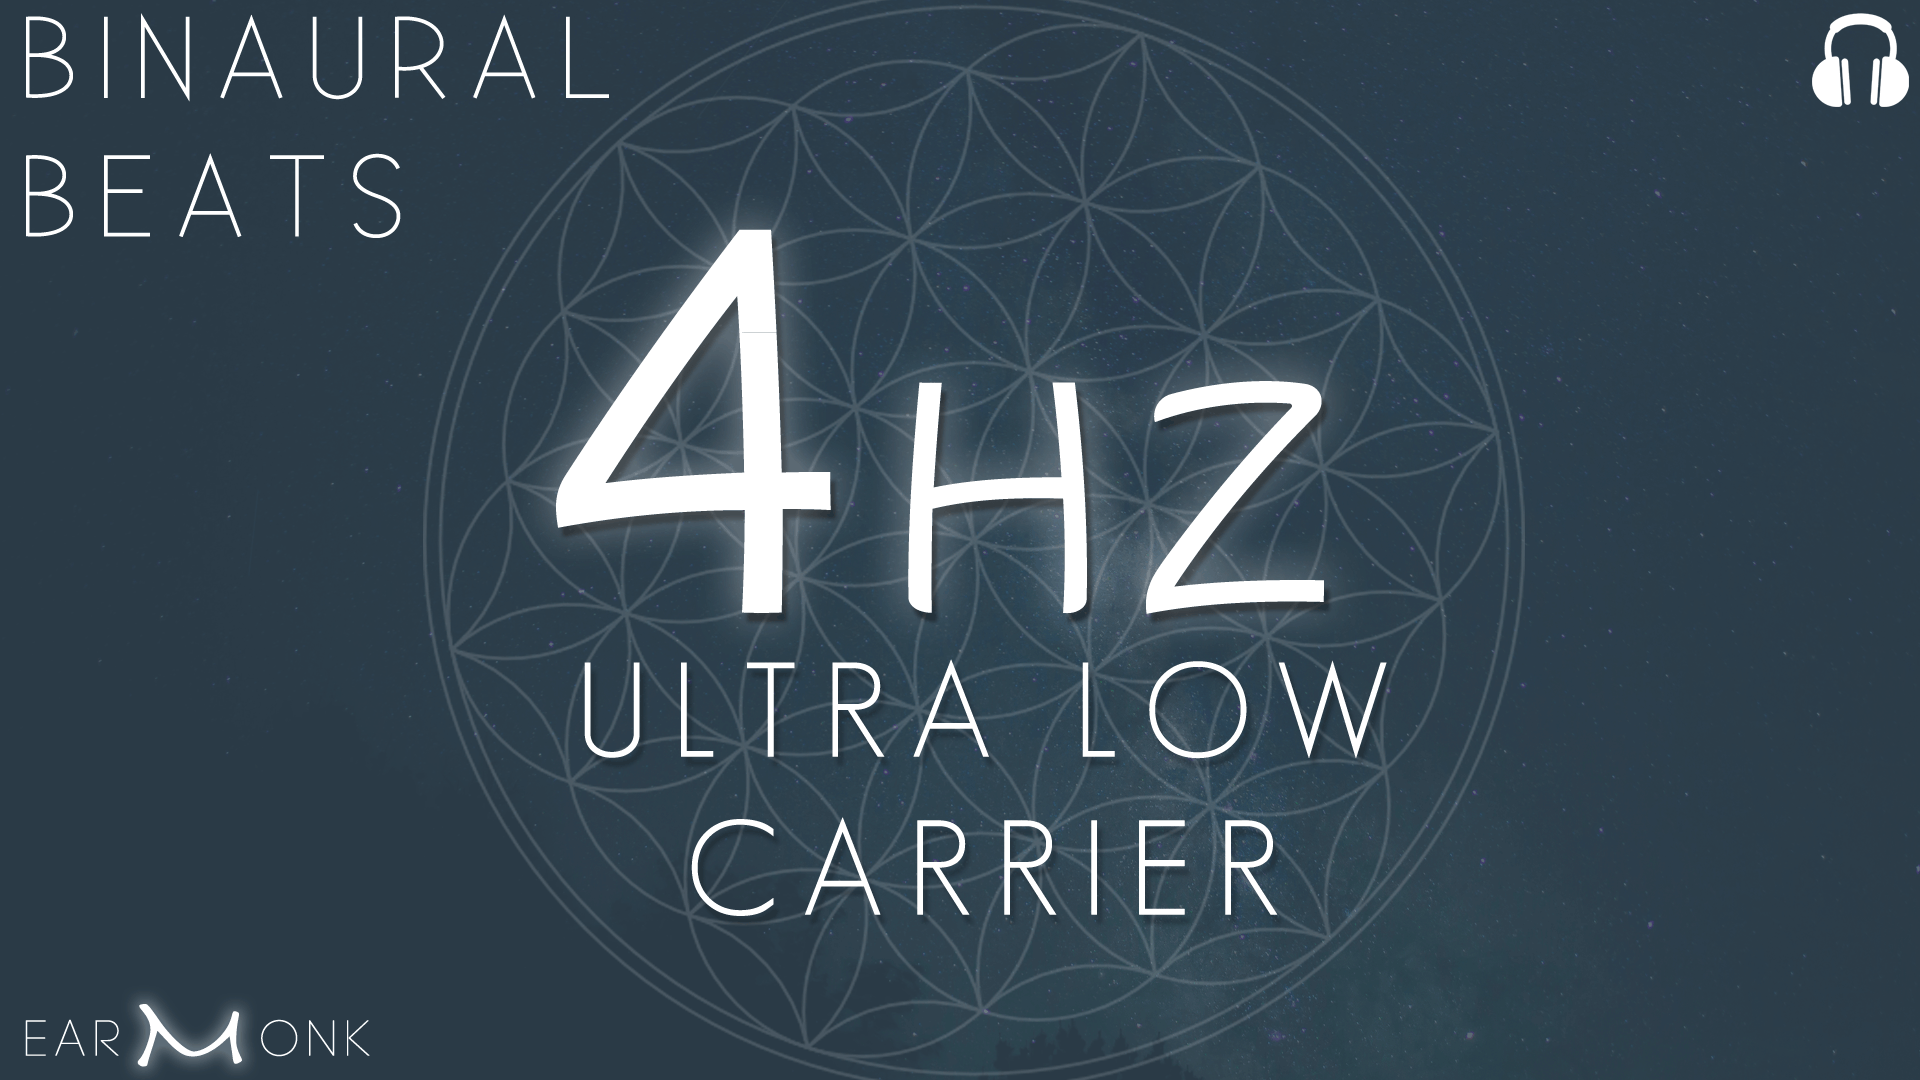 4Hz Theta Binaural Beats Ultra Low Carrier